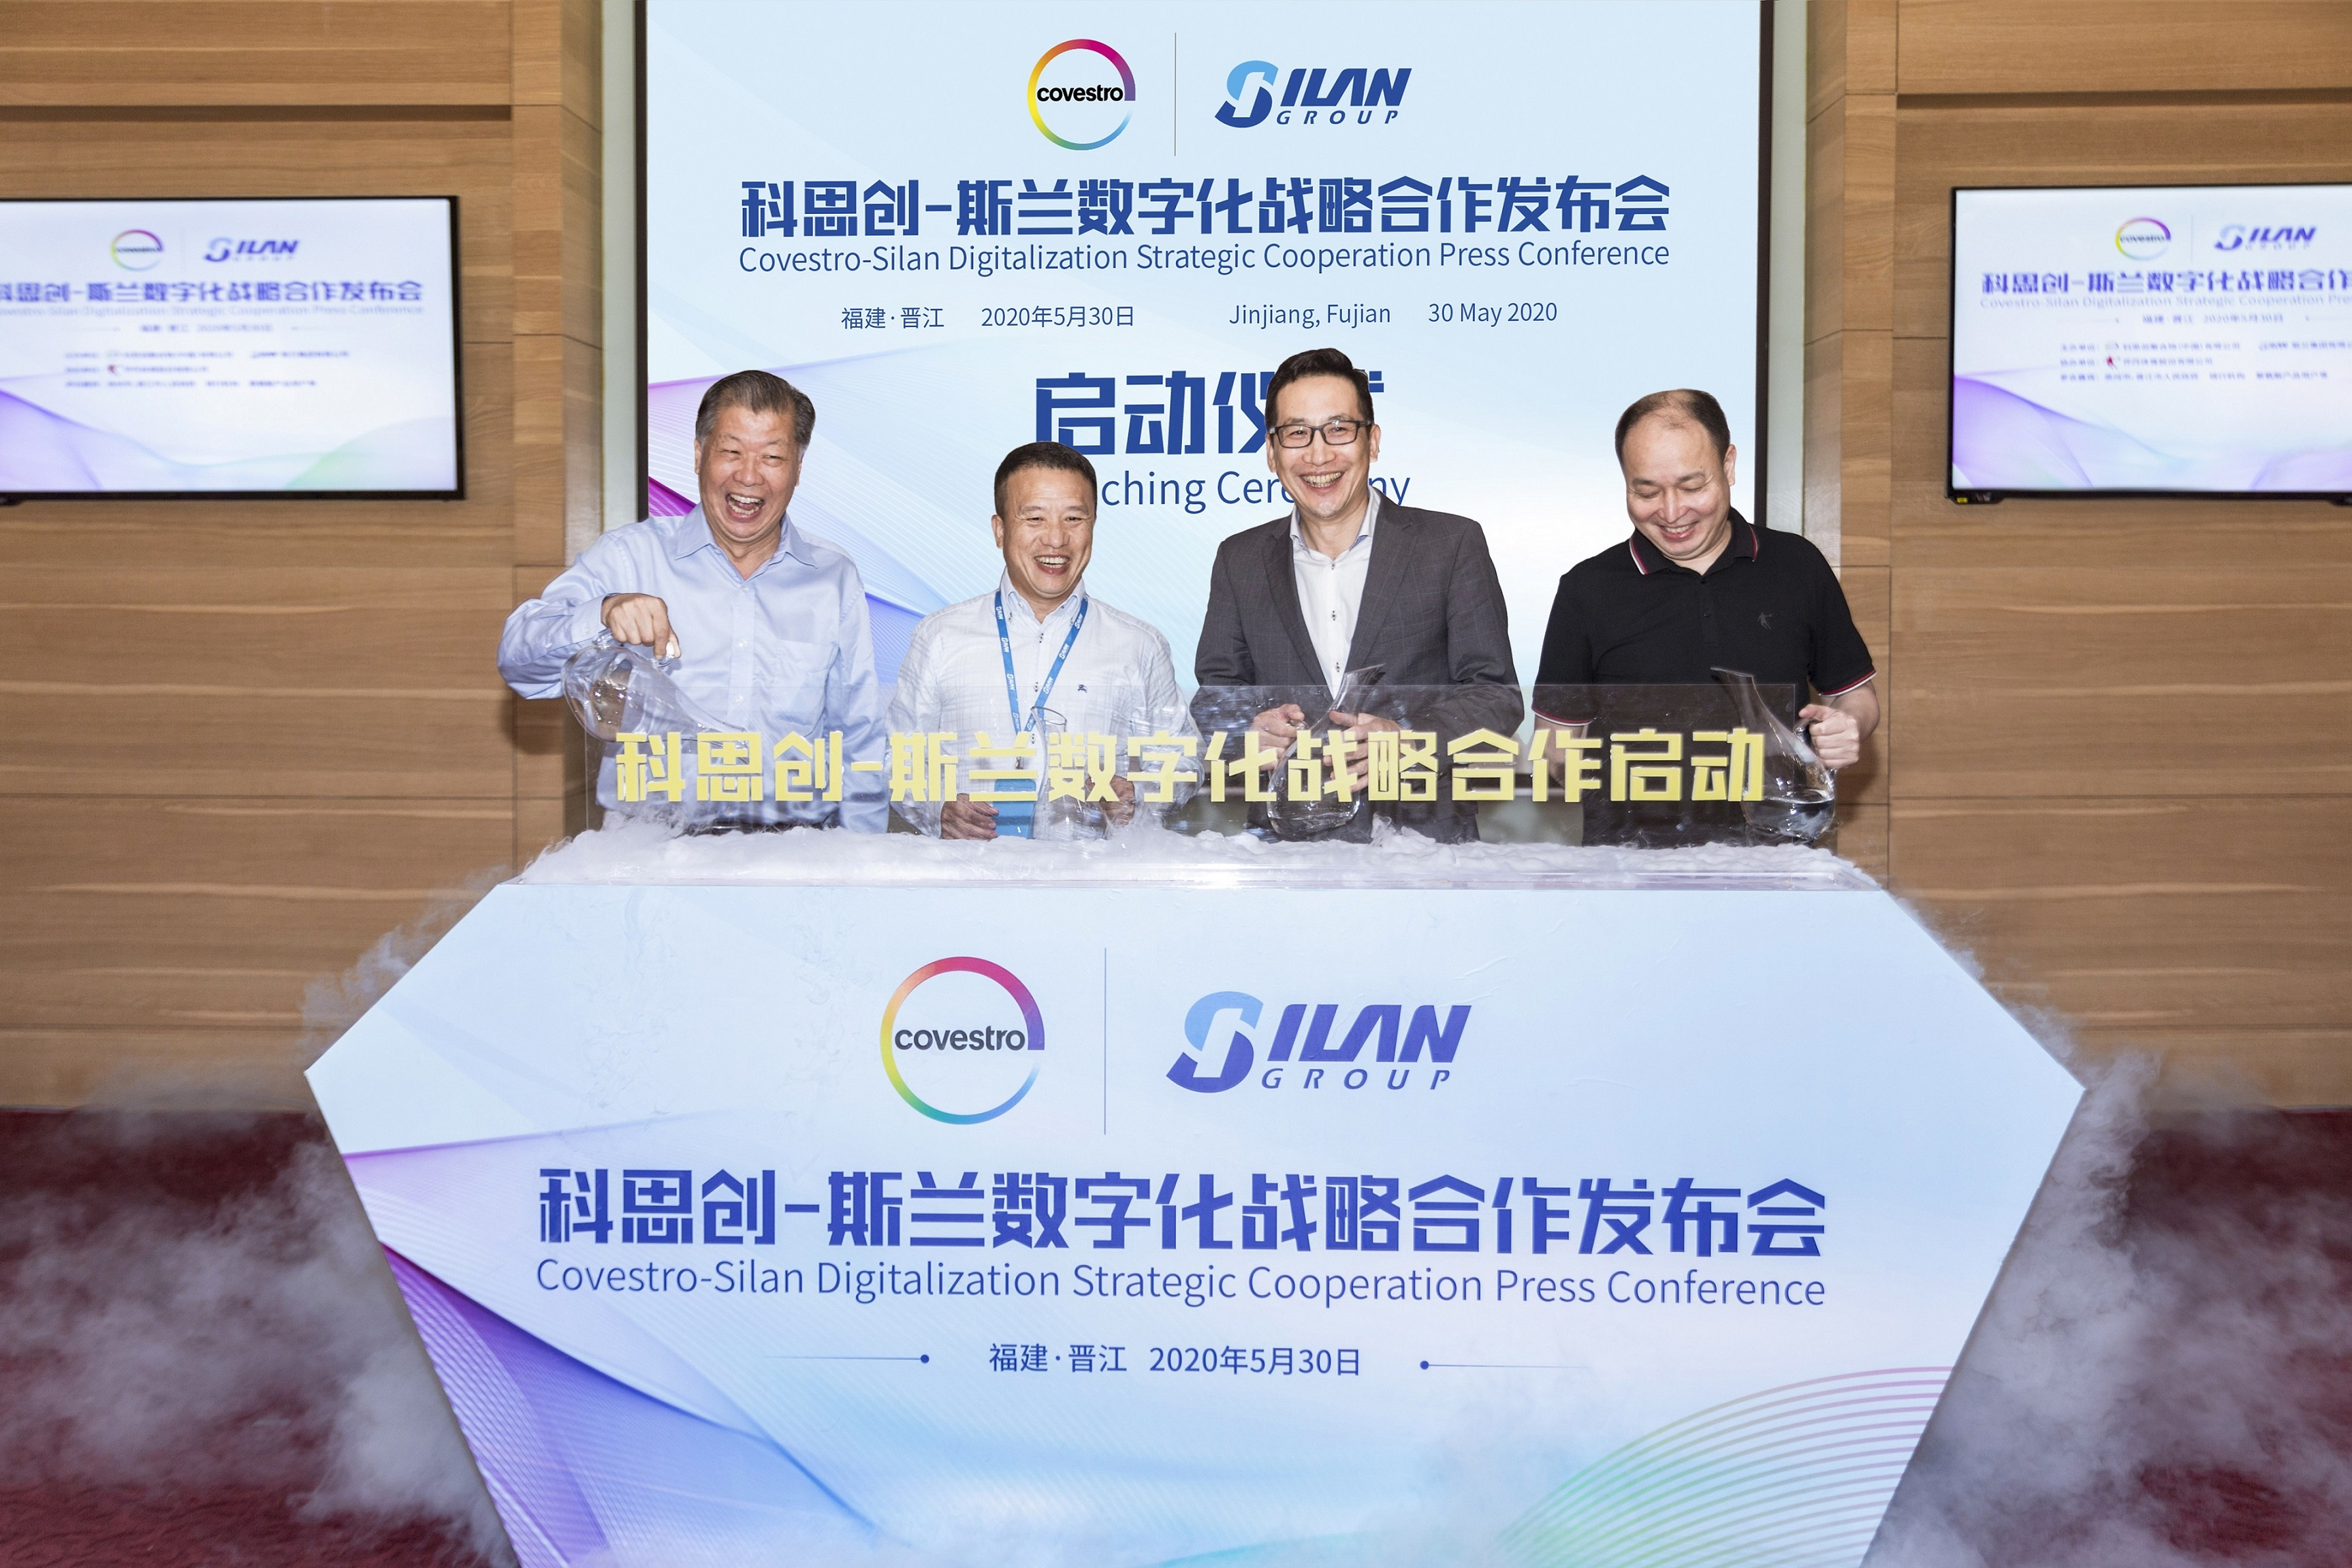 Covestro and Silan Group push on digital strategic cooperation